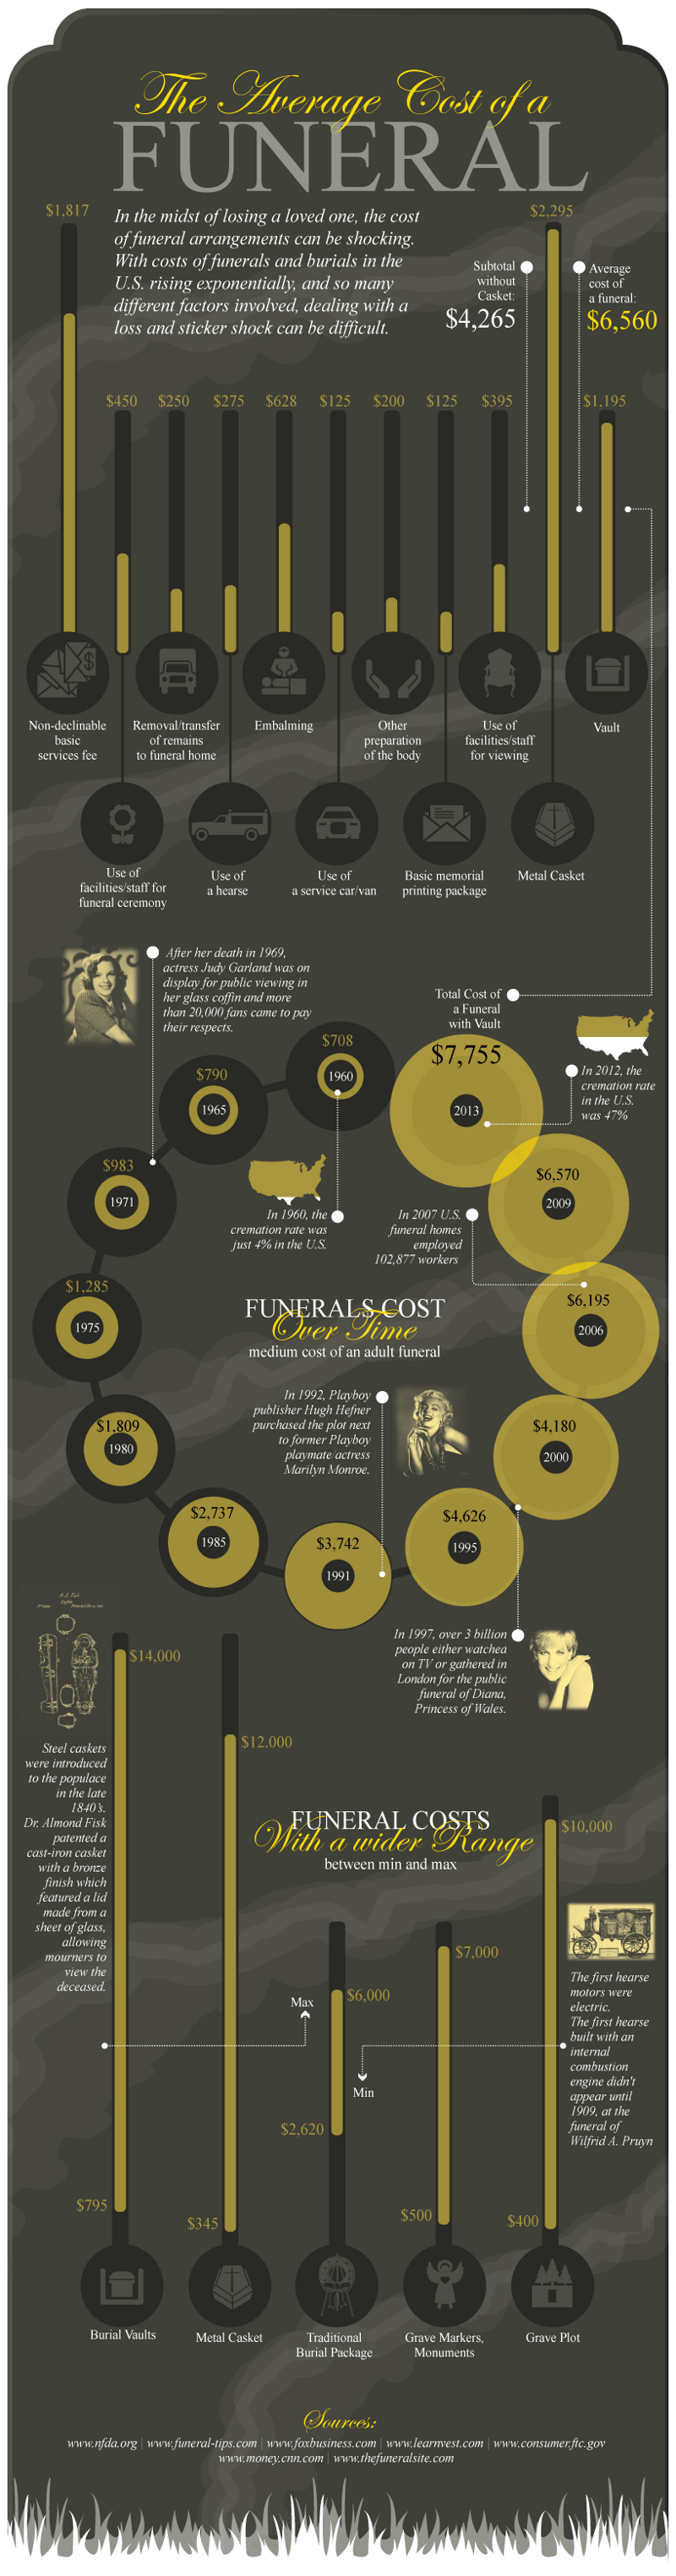 Average Cost of a Funeral